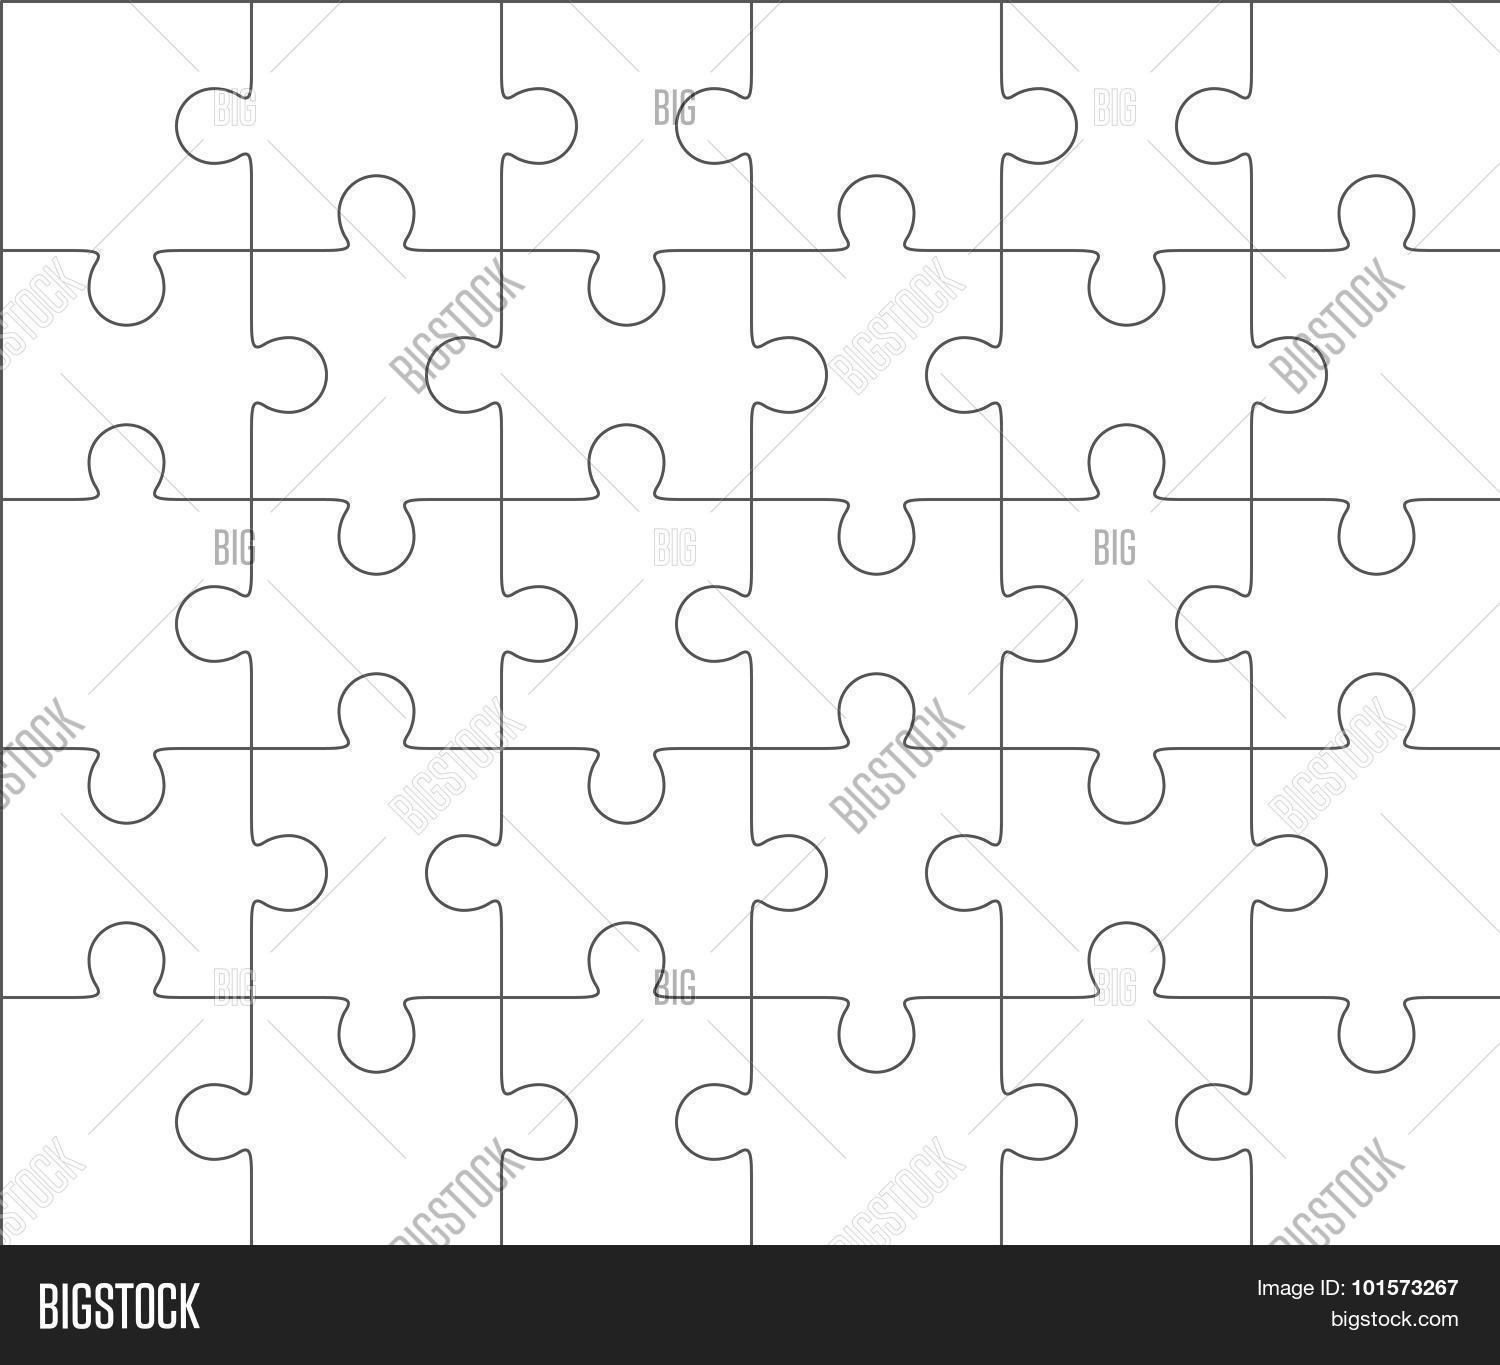 Jigsaw Puzzle Blank Vector & Photo (Free Trial) | Bigstock